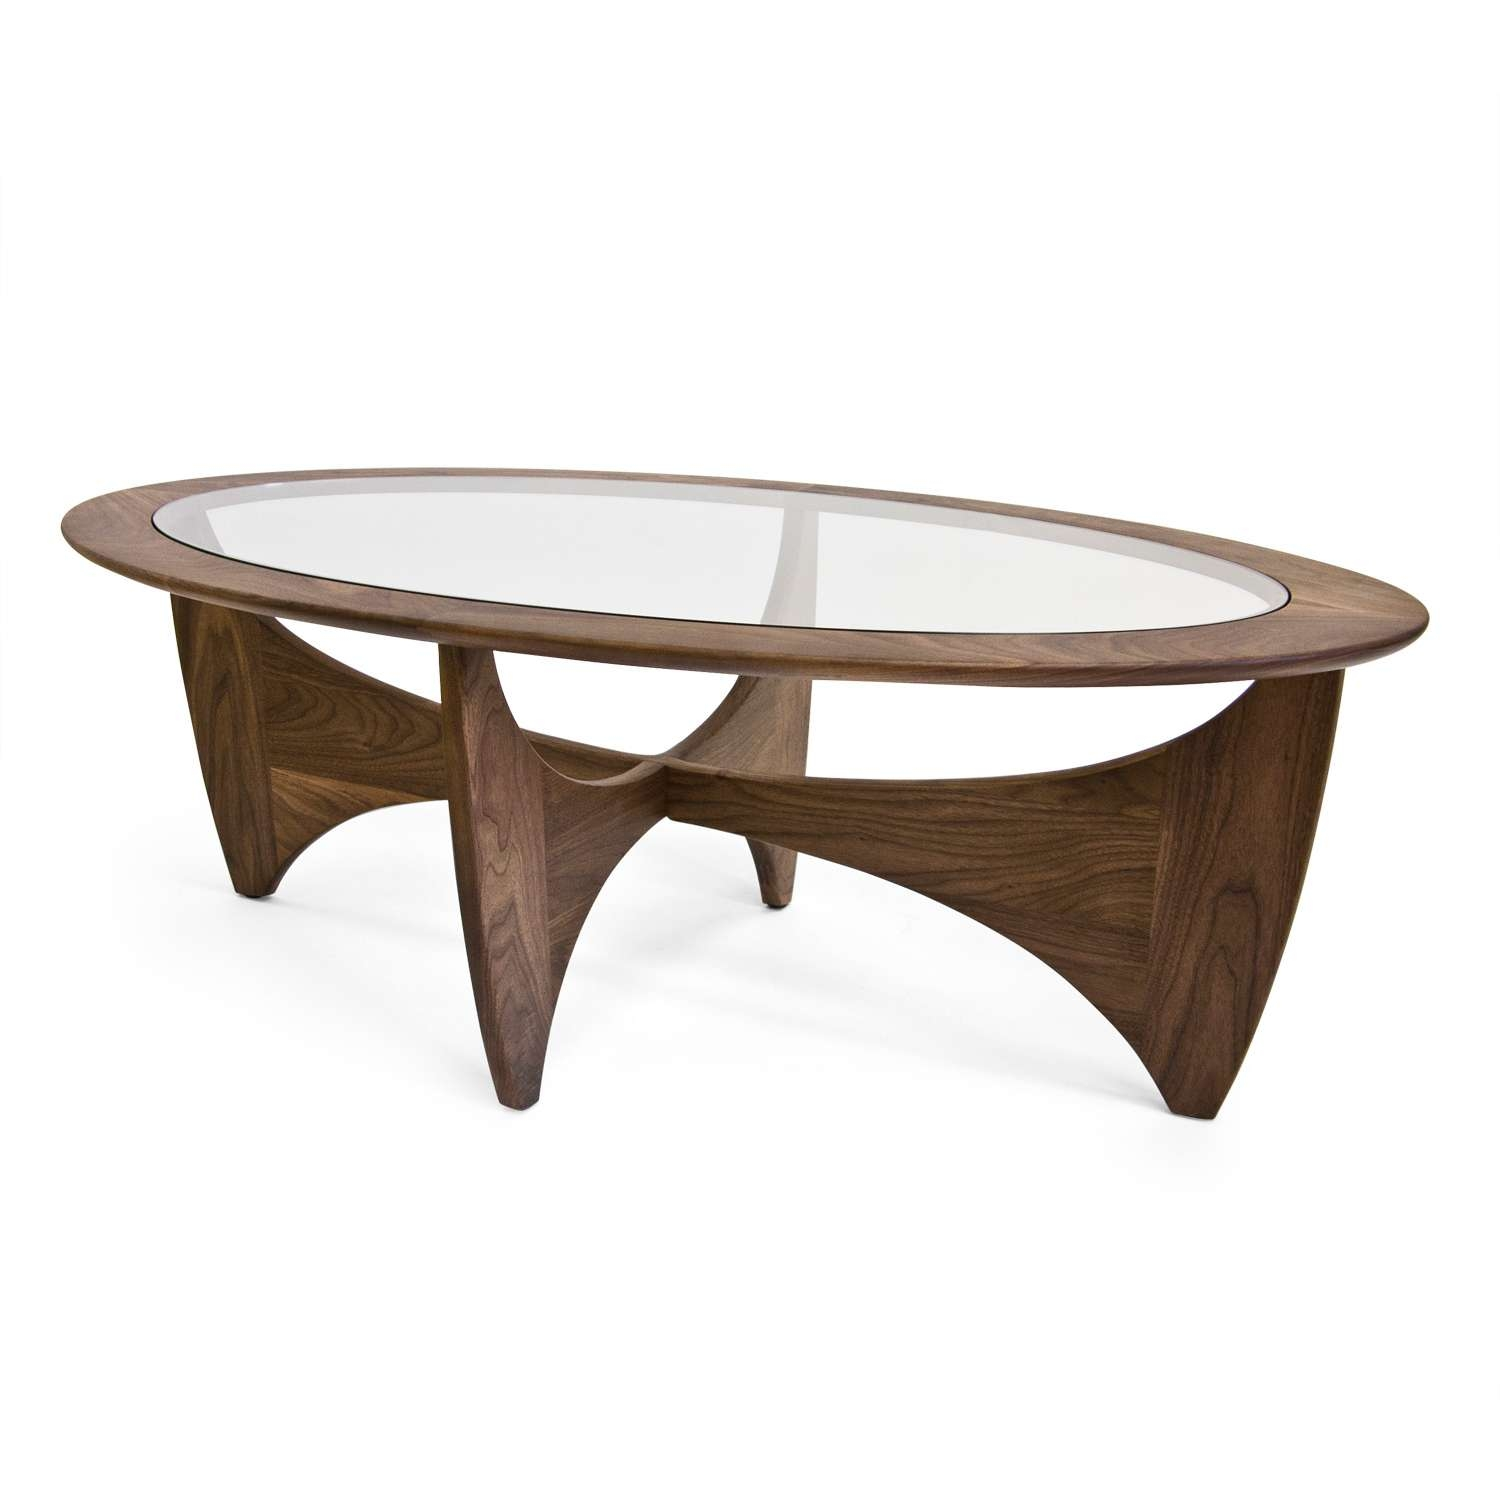 Aeon Furniture, Aeon Furniture, Angela Coffee Table Inside Most Recently Released Oval Walnut Coffee Tables (Gallery 9 of 20)